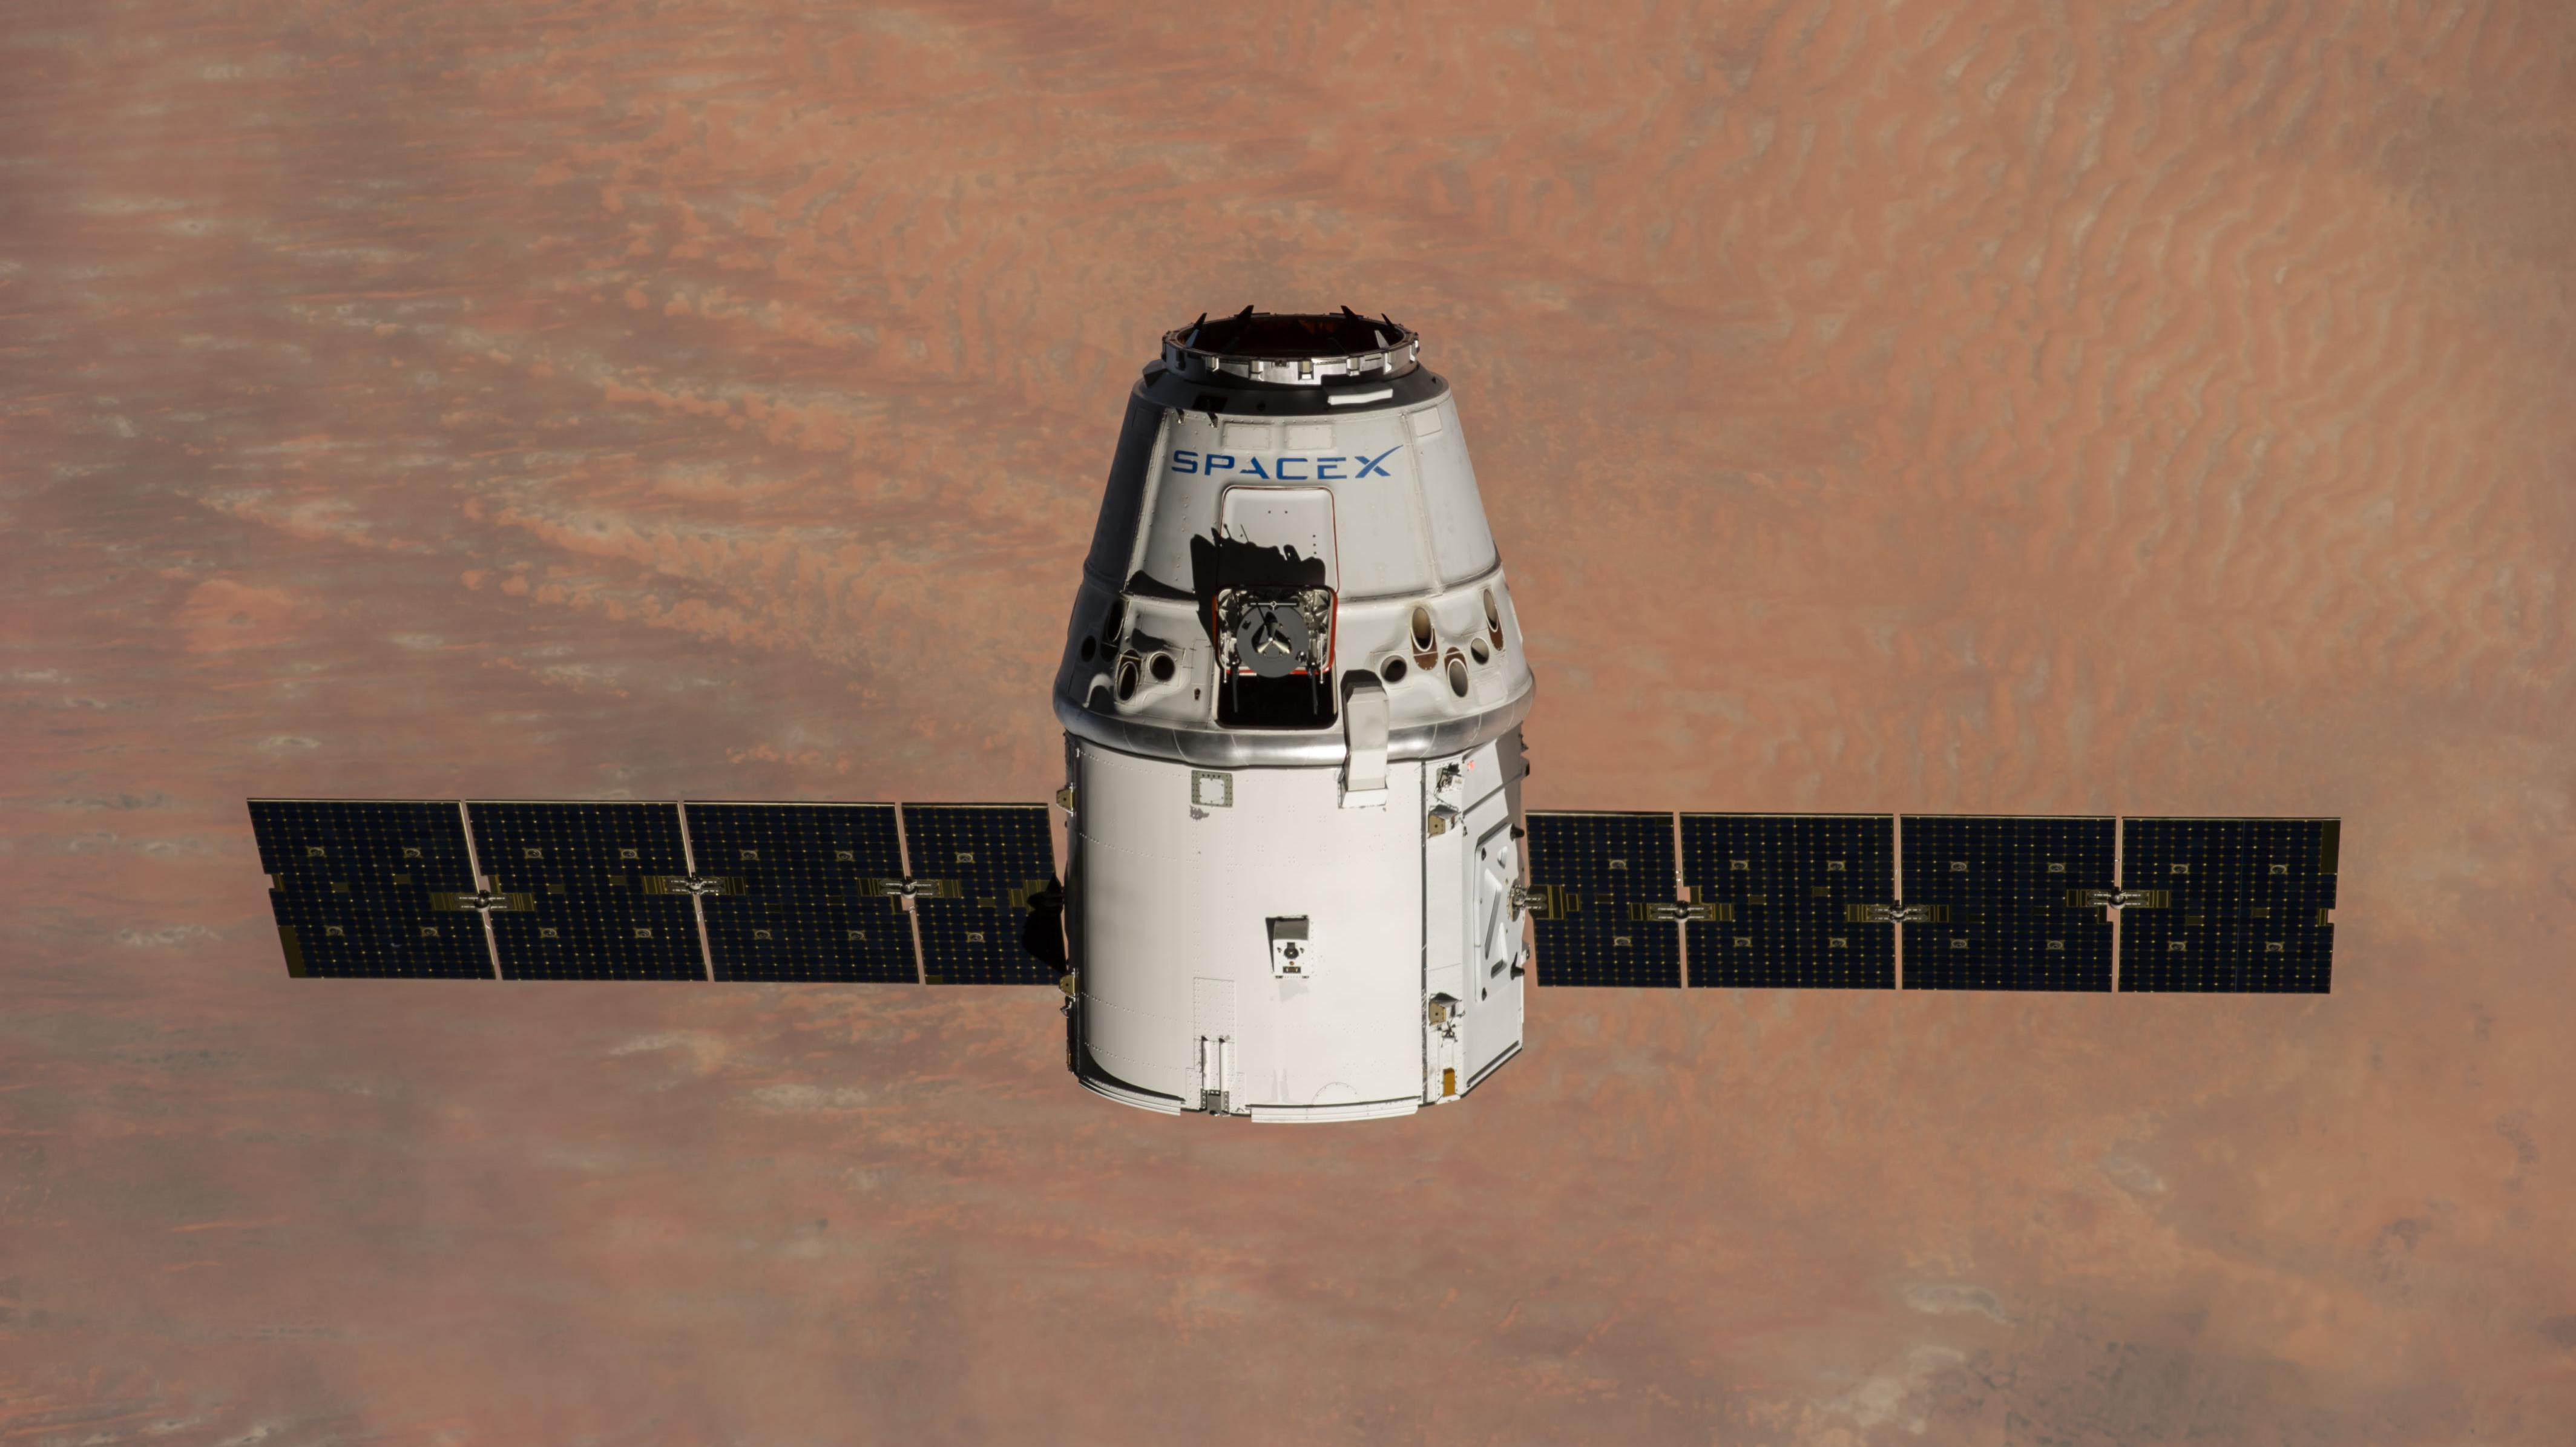 spacex-dragon.jpg